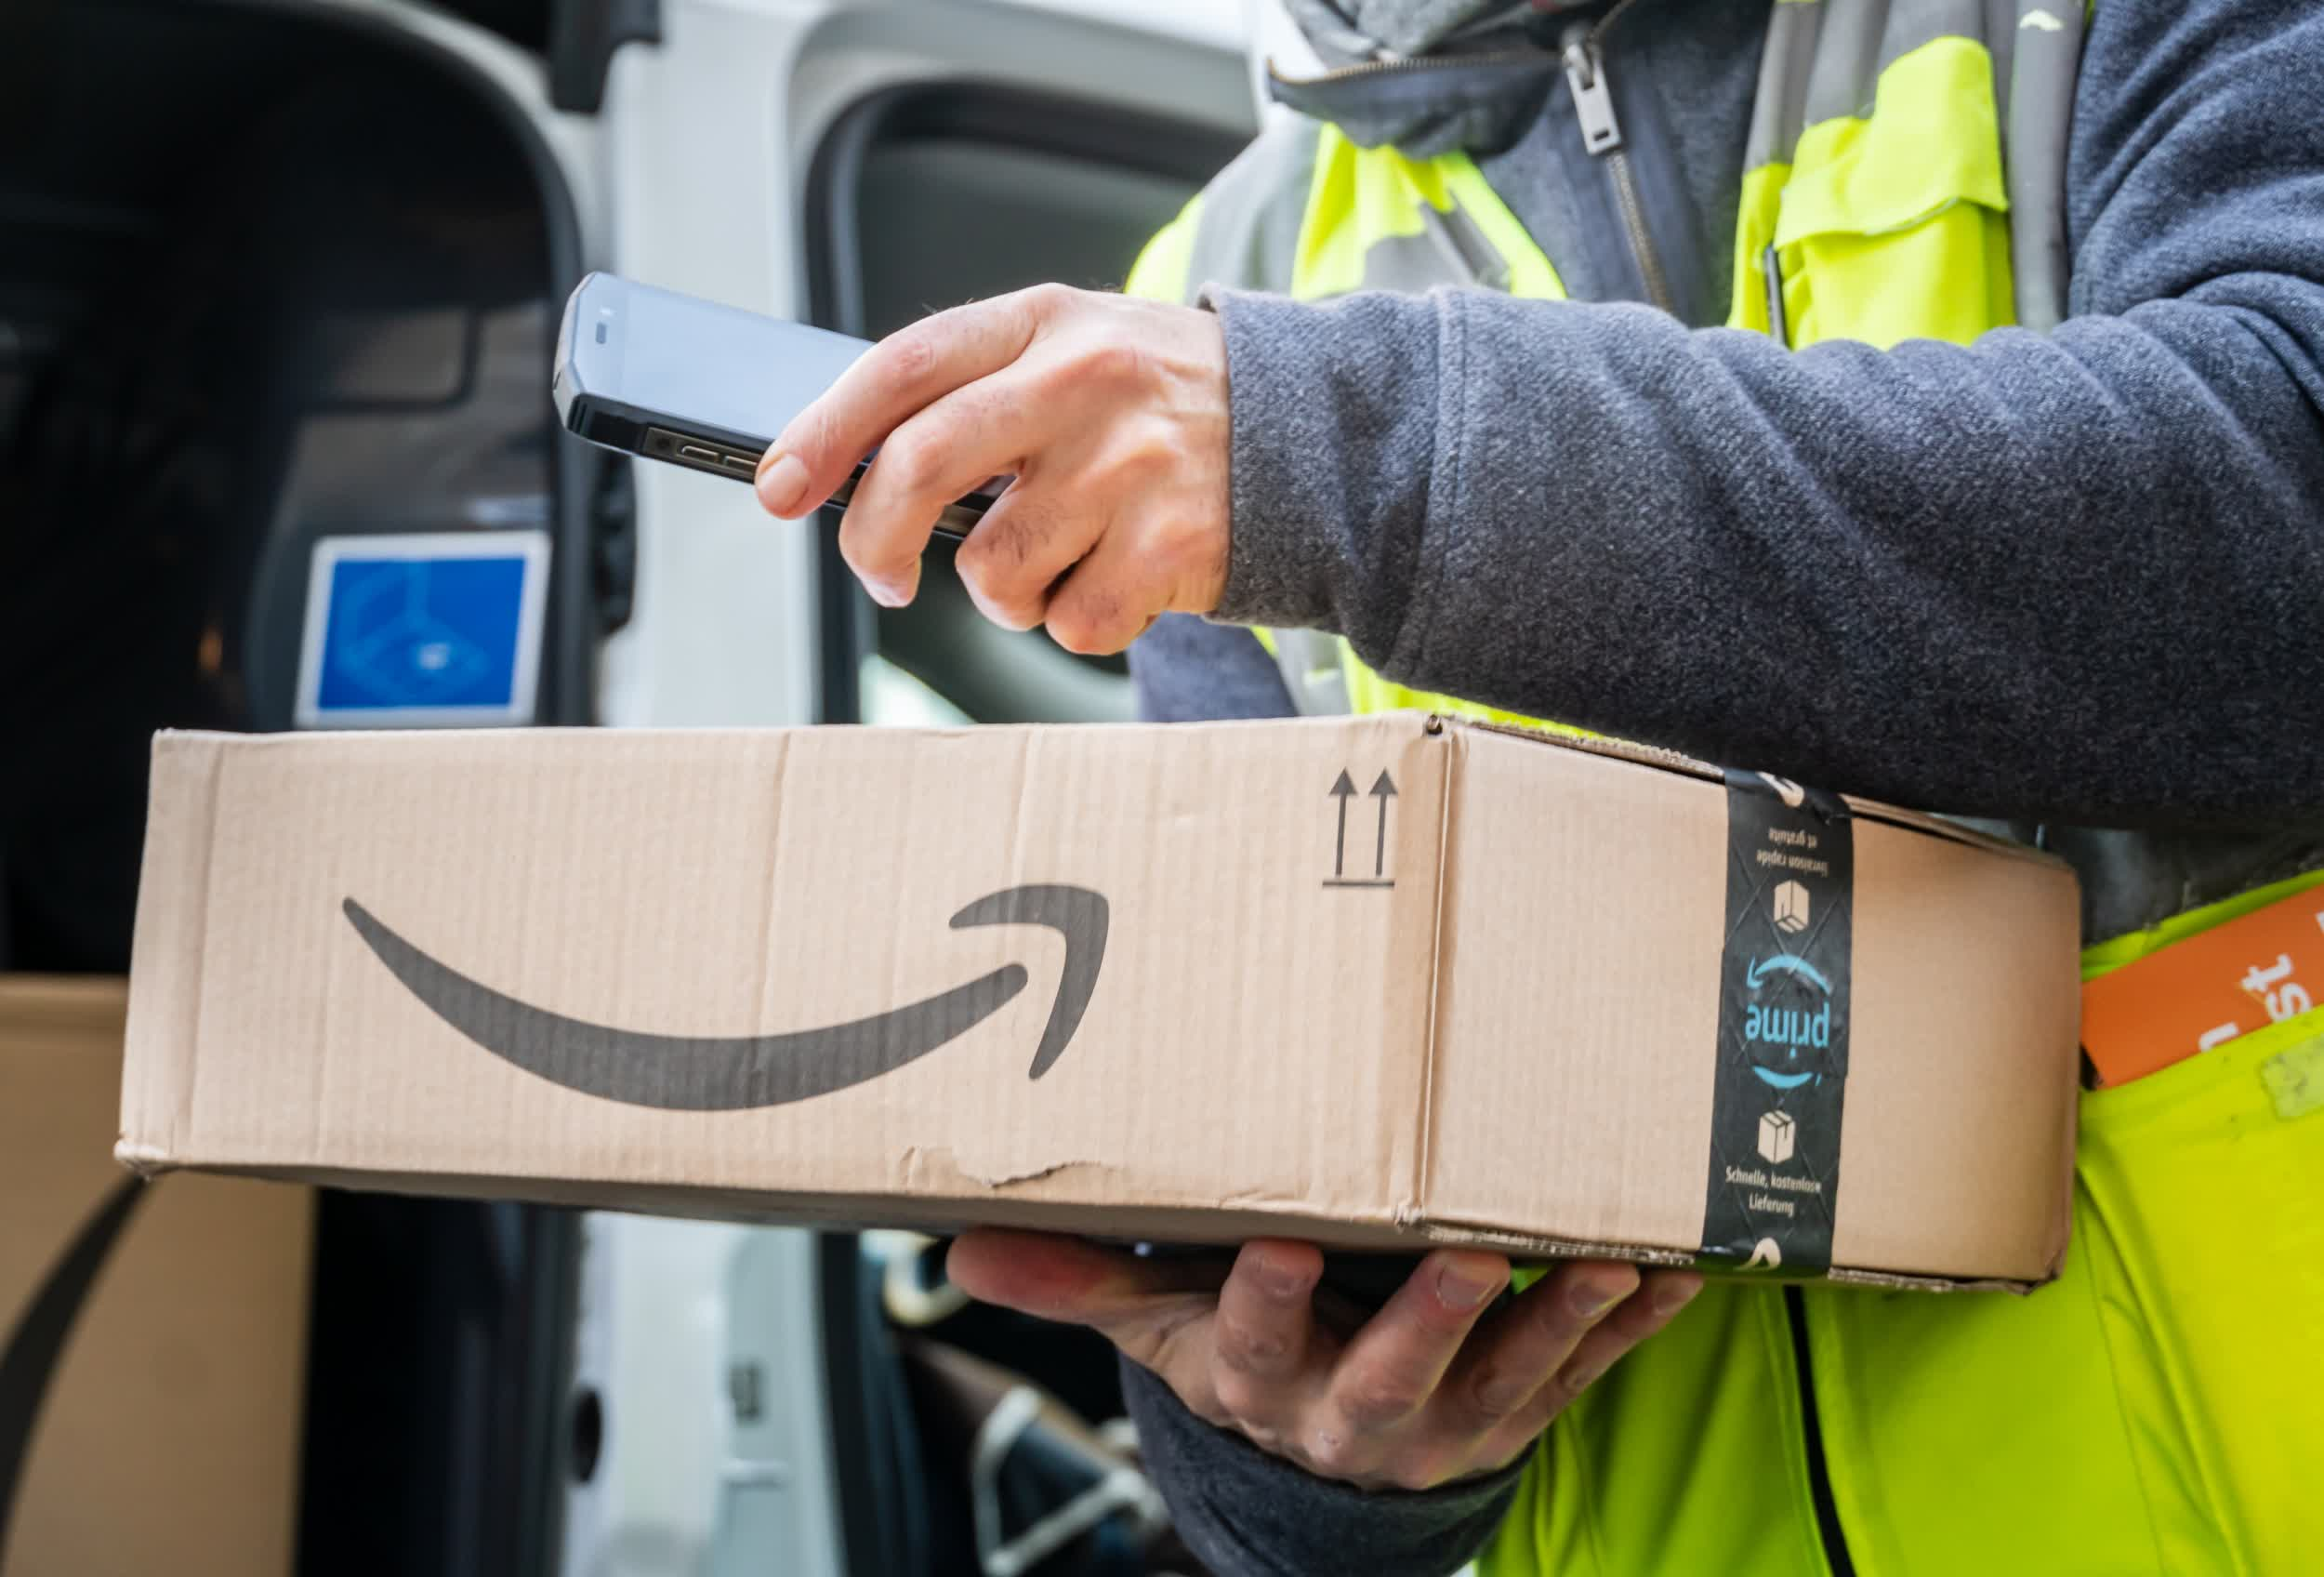 Amazon says it will cover the entire cost of college tuition fees for 750,000 frontline workers